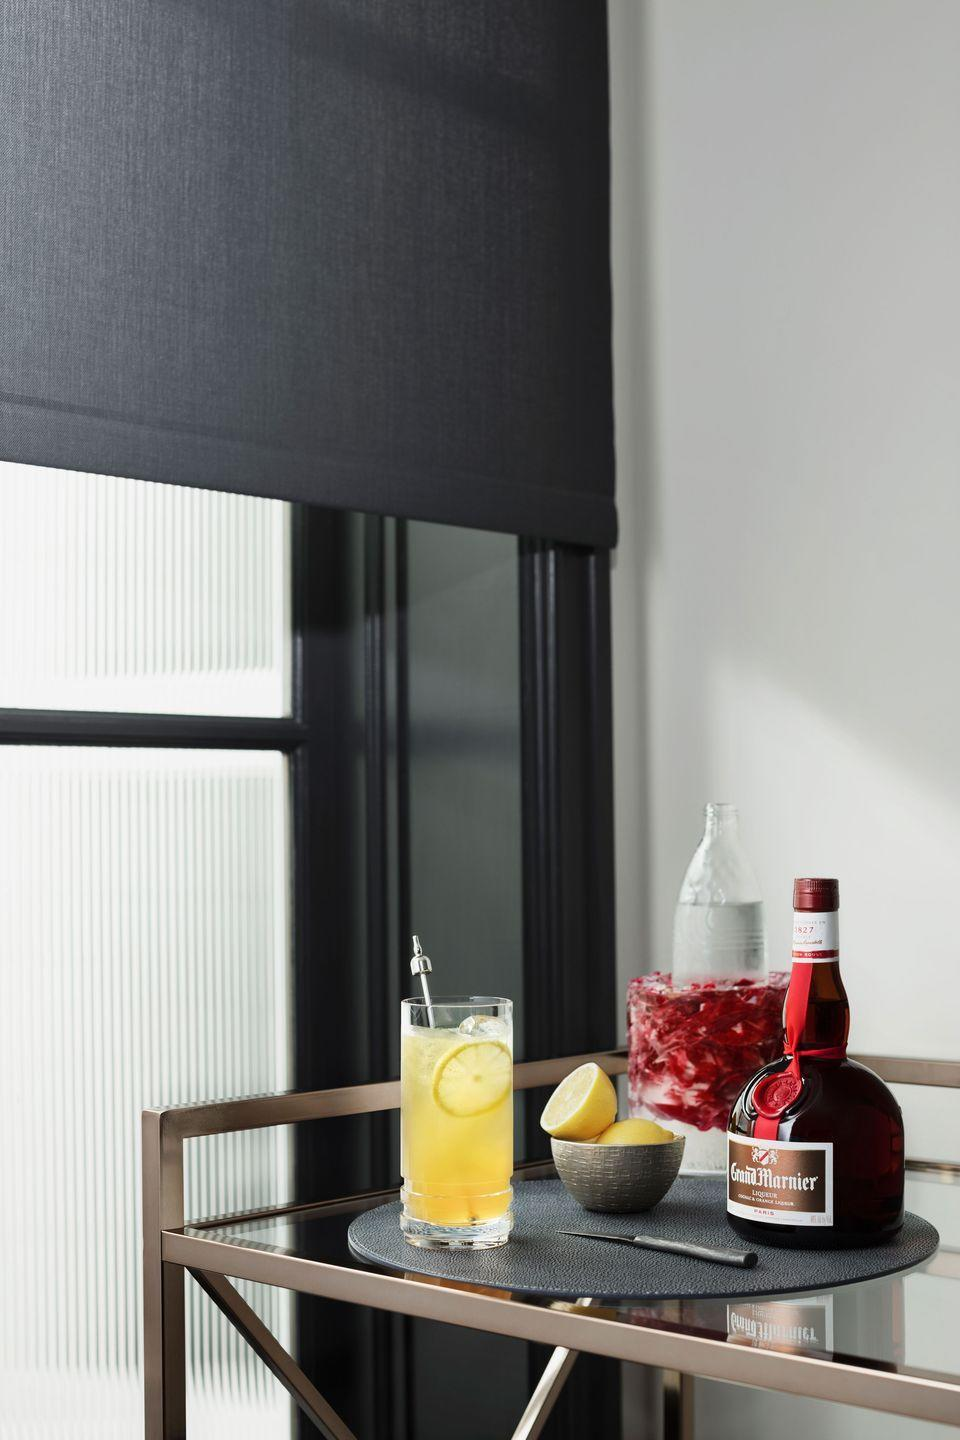 <p><strong>Ingredients</strong></p><p>1.5 oz Grand Marnier Cordon Rouge<br>.75 oz lemon juice<br>1 barspoon simple syrup<br>3 oz soda water</p><p><strong>Instructions</strong></p><p>Build all ingredients in a shaker tin, add ice, and shake. Strain over ice into a Collins glass.<br></p>